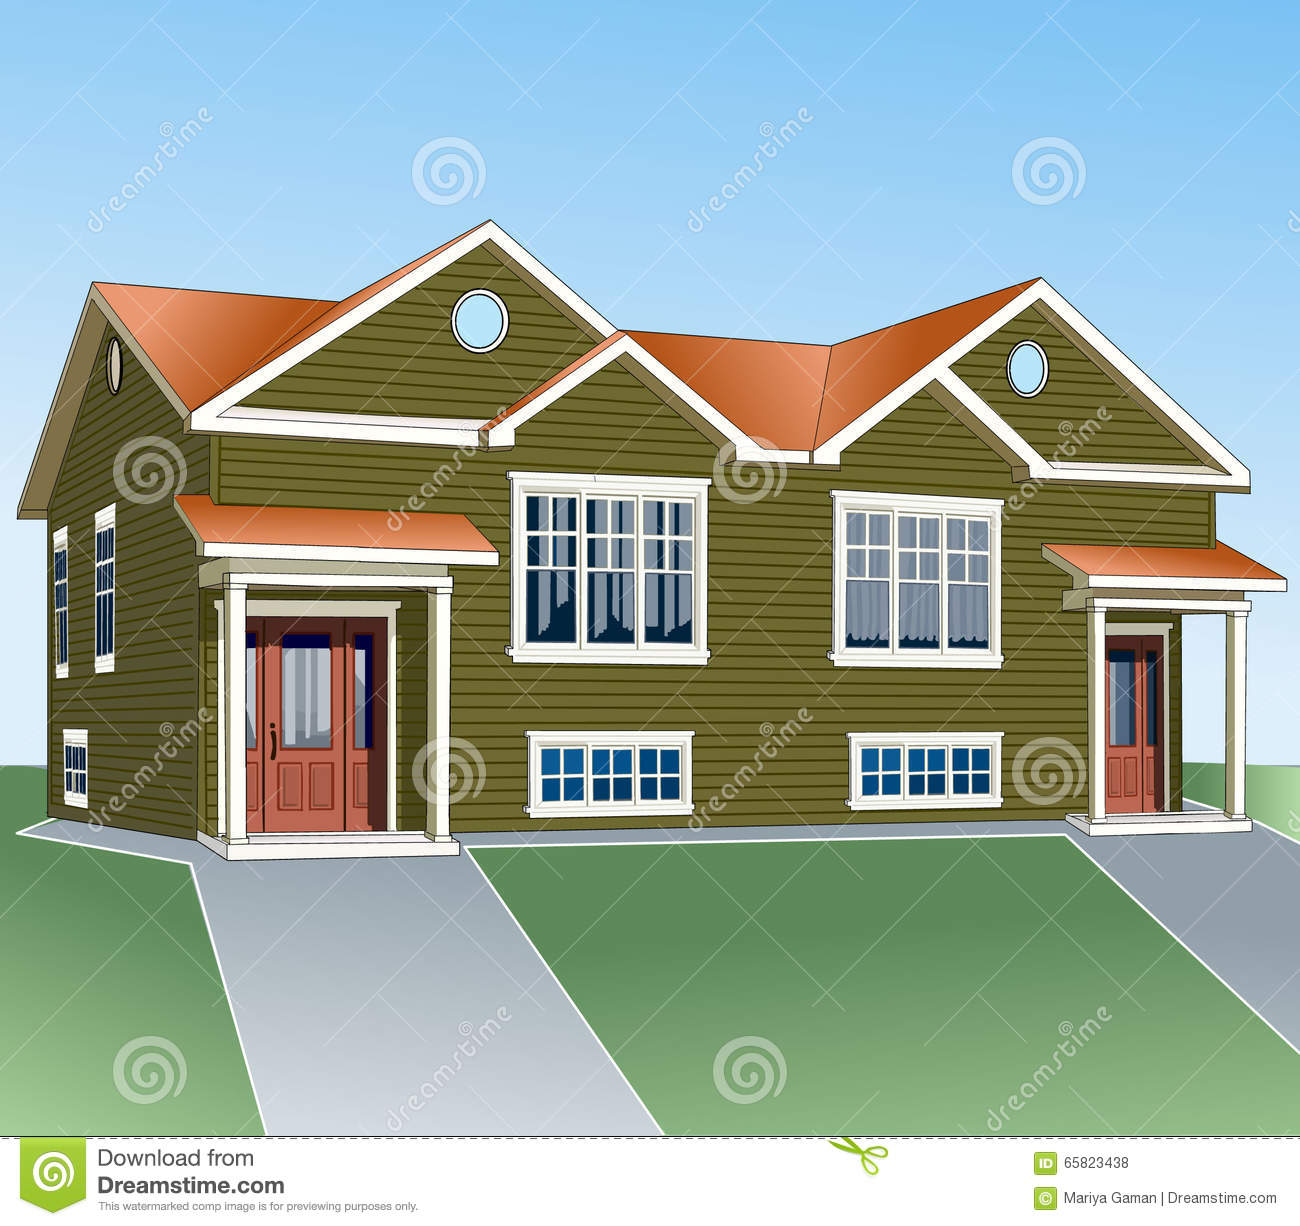 Simple building for Simple house structure design